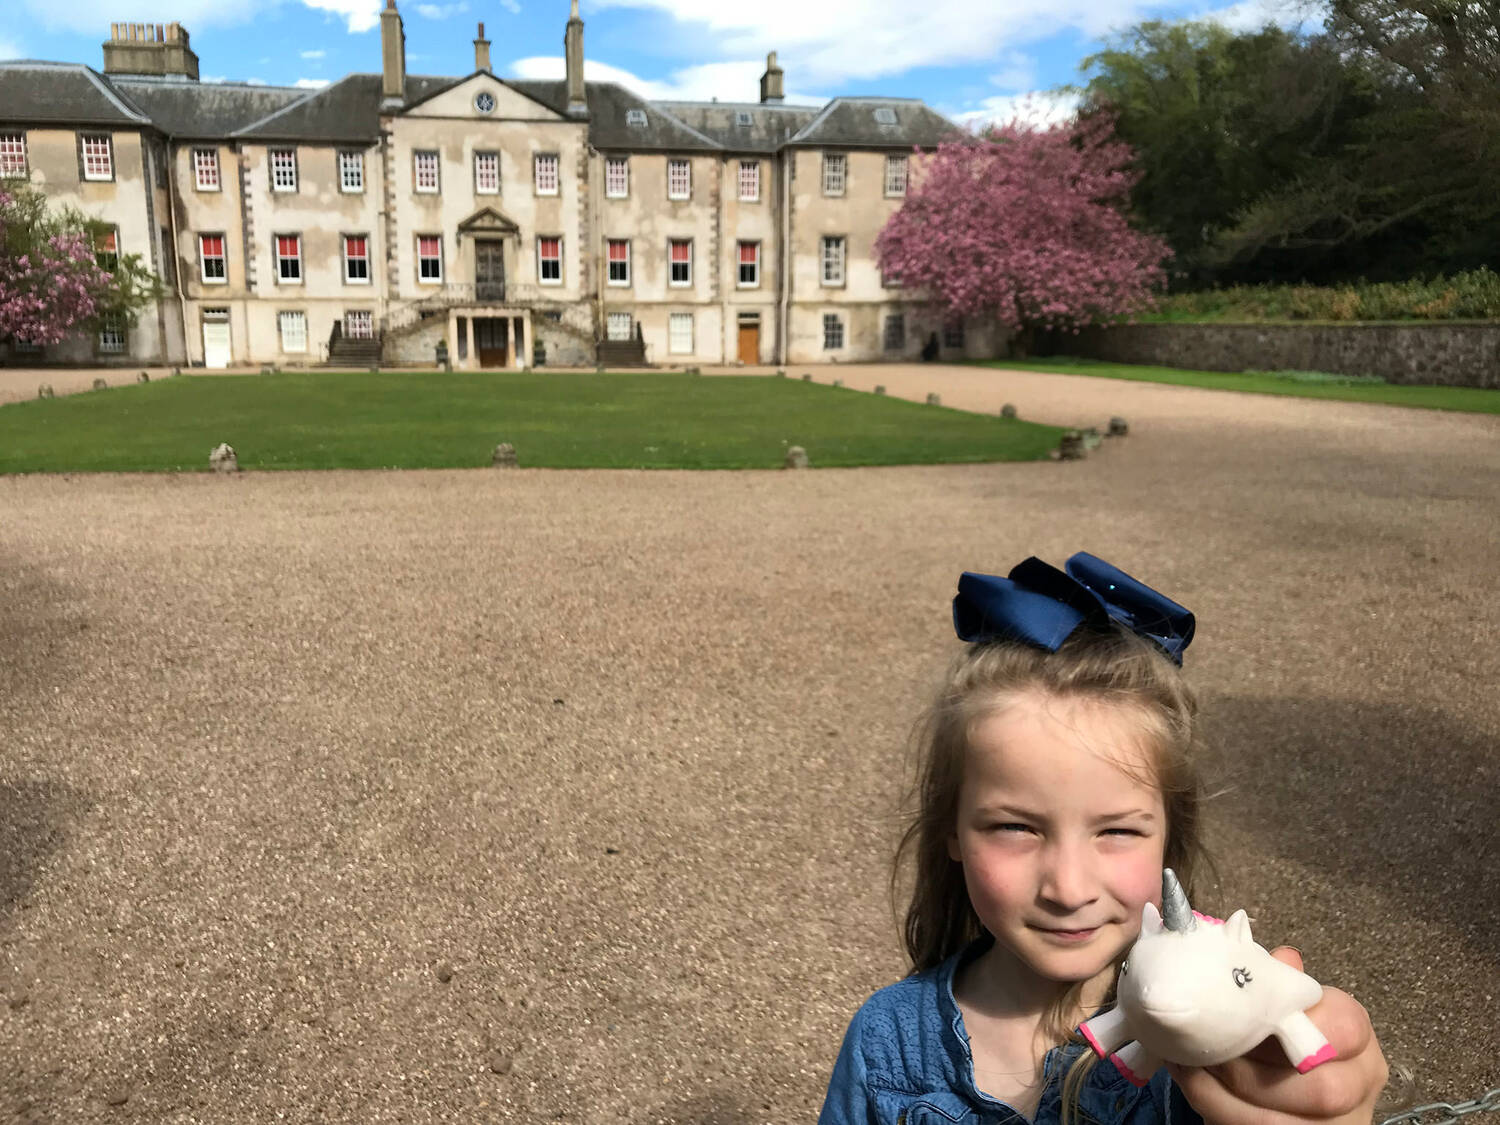 Emma and Ursula the Unicorn stand in front of Newhailes House on a sunny spring day.